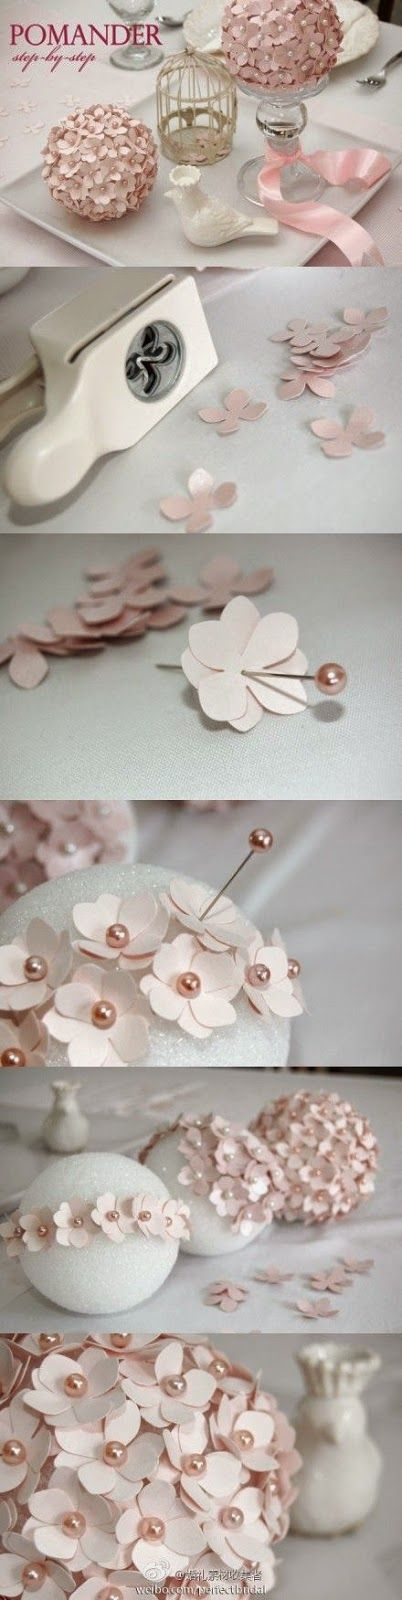 DIY Paper Flower Pomander Tutorial